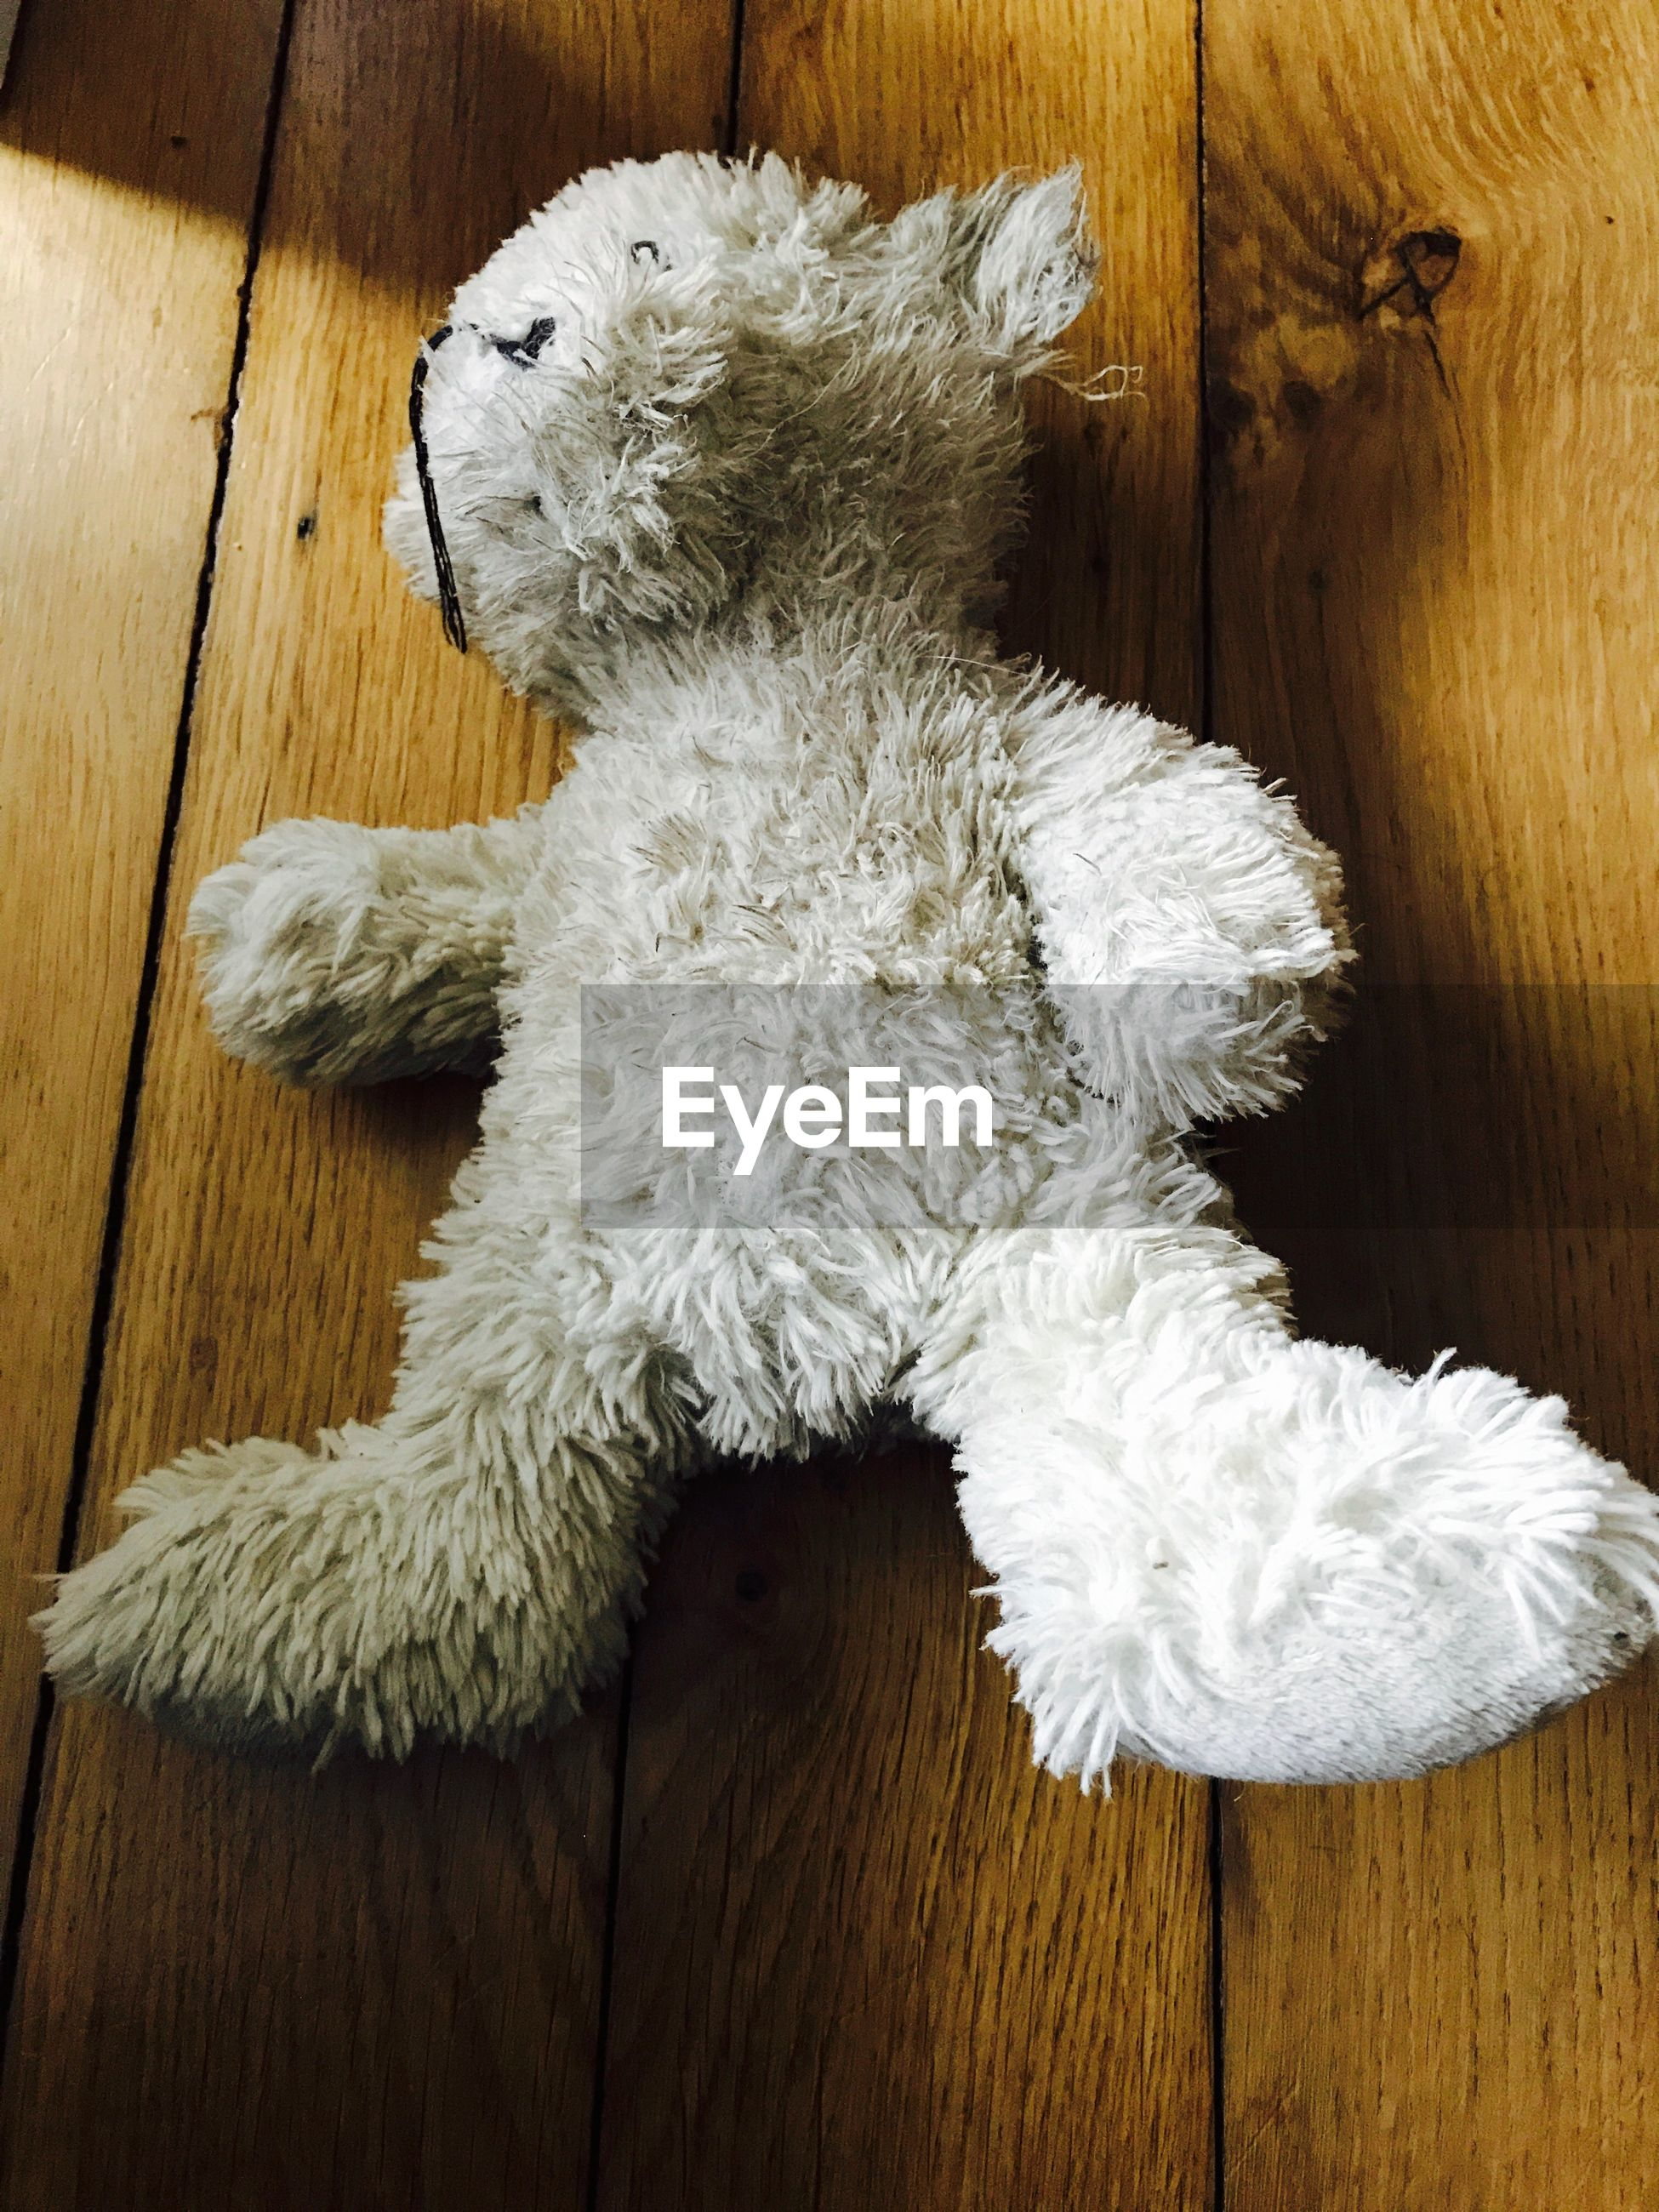 High angle view of white teddy bear on hardwood floor